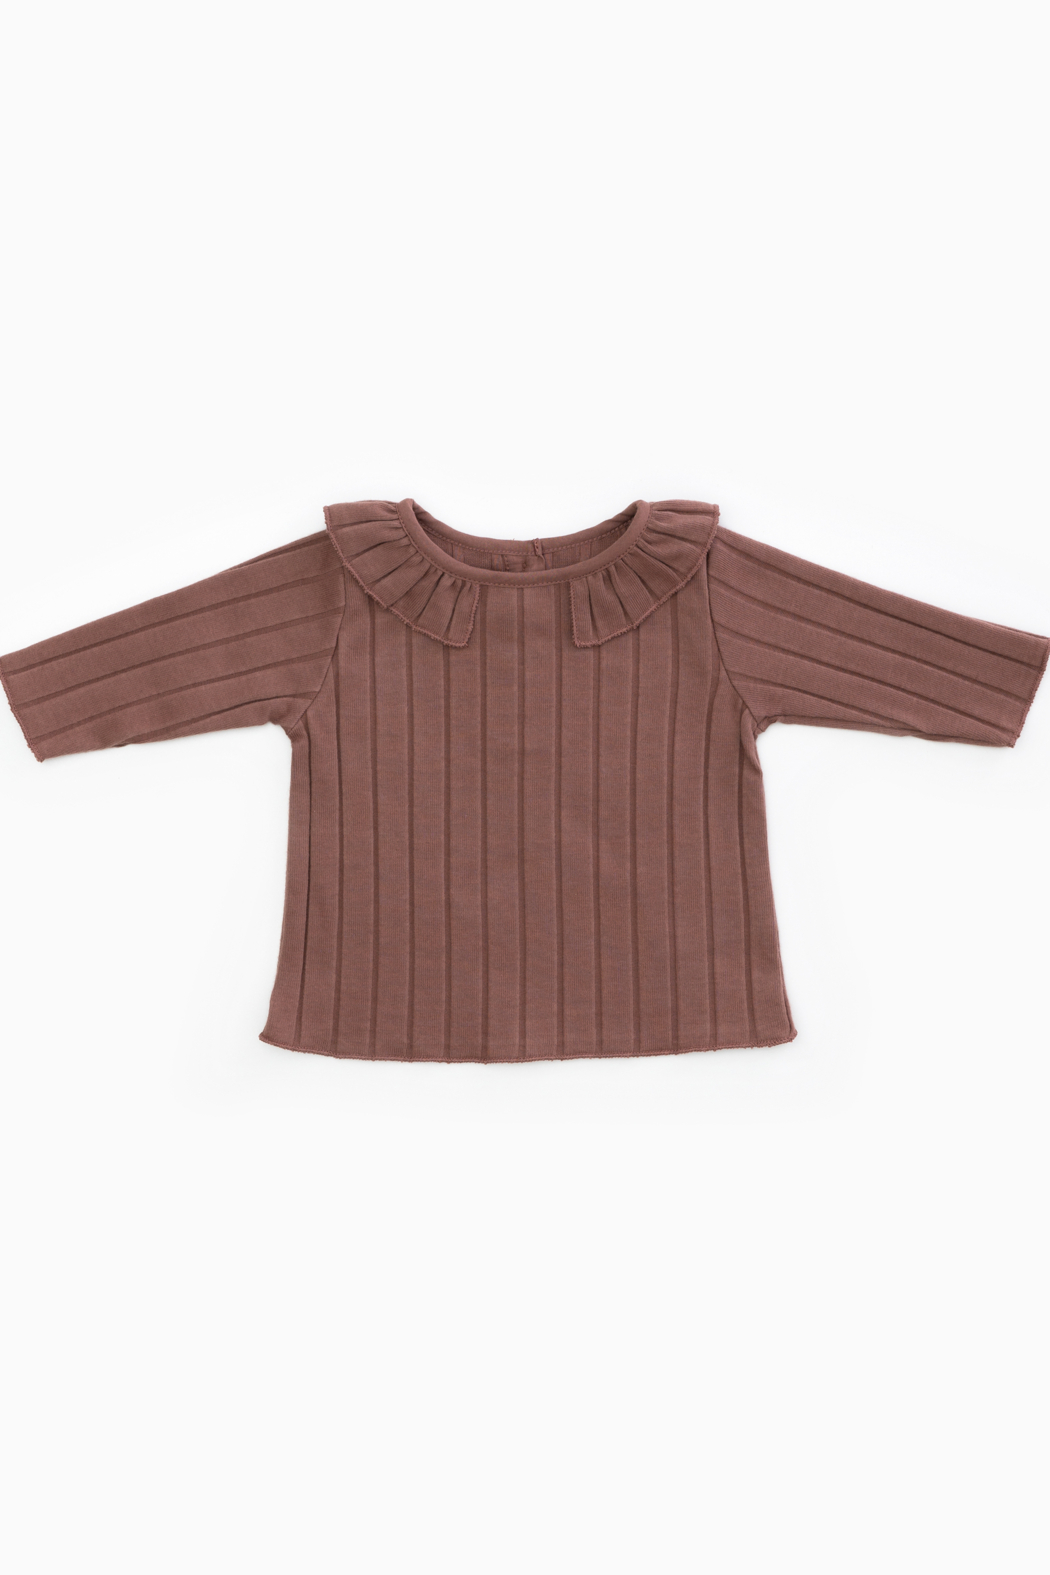 Play Up Organic Cotton Rib T-Shirt with Frill for Baby Girls - Main Image